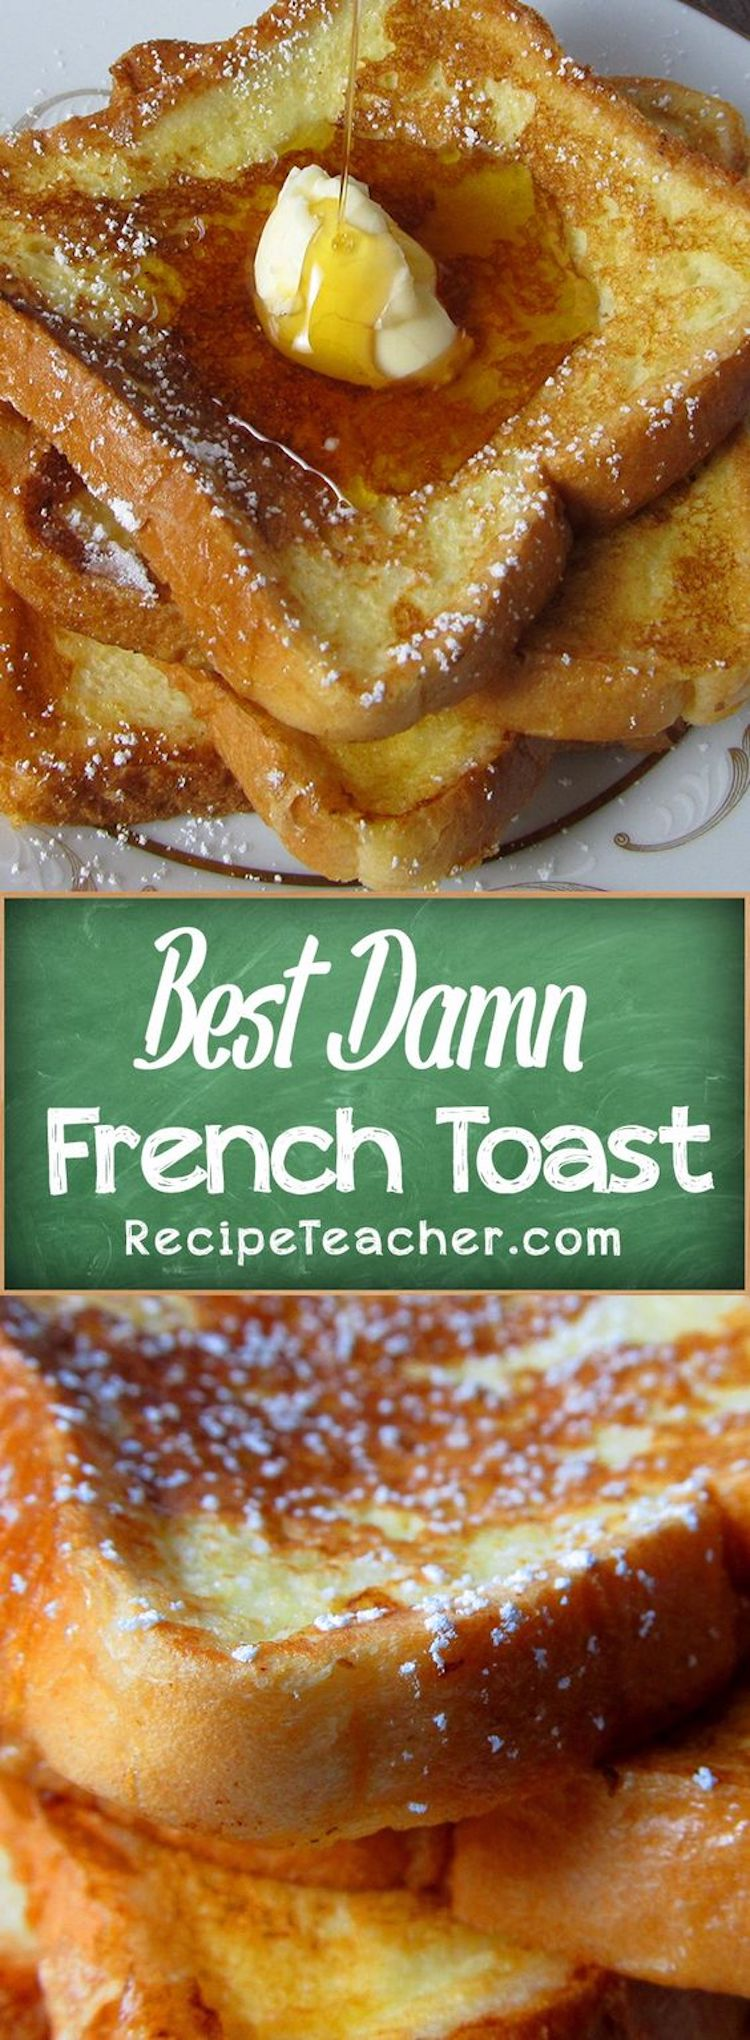 Simple & Easy French Toast Recipe